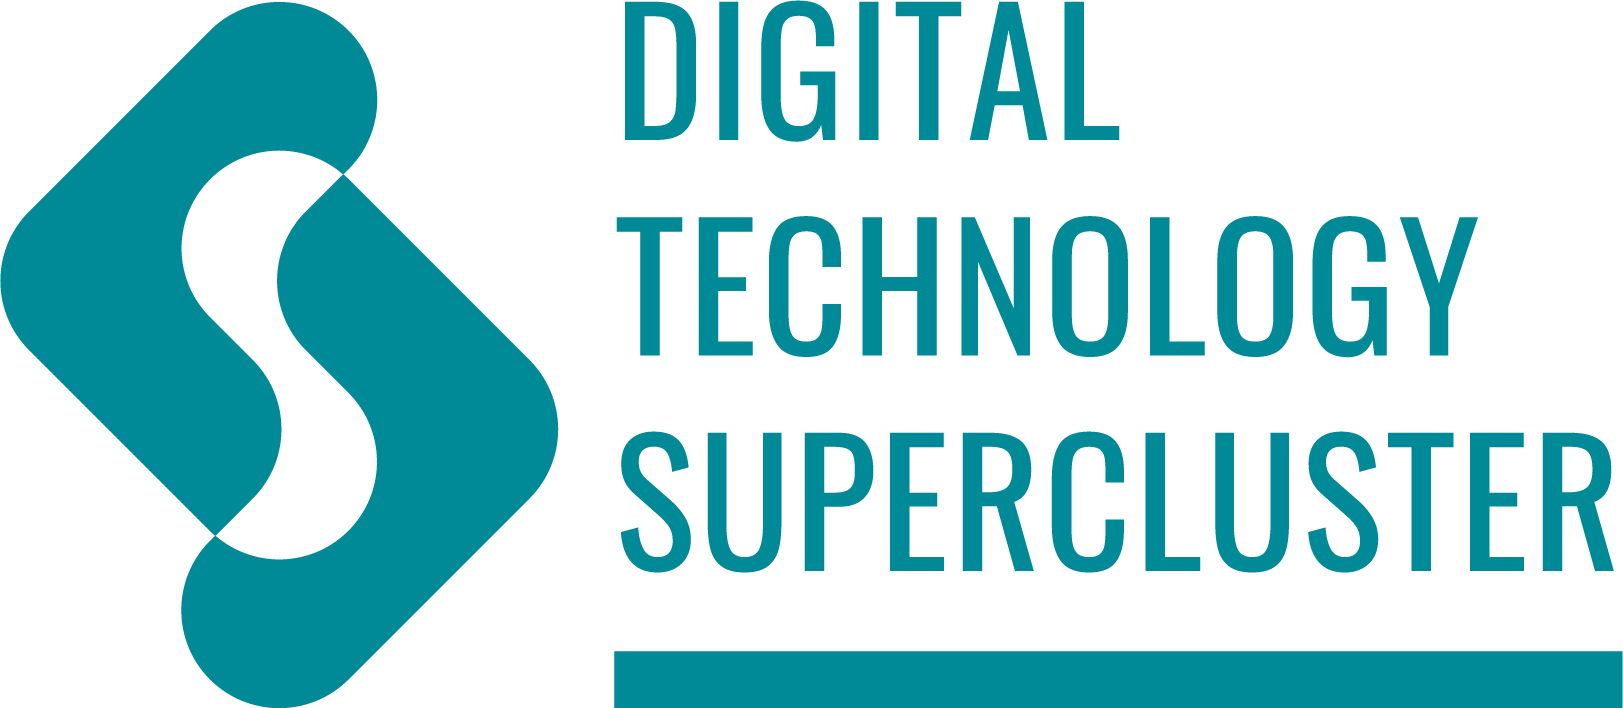 Digital Technology Supercluster logo